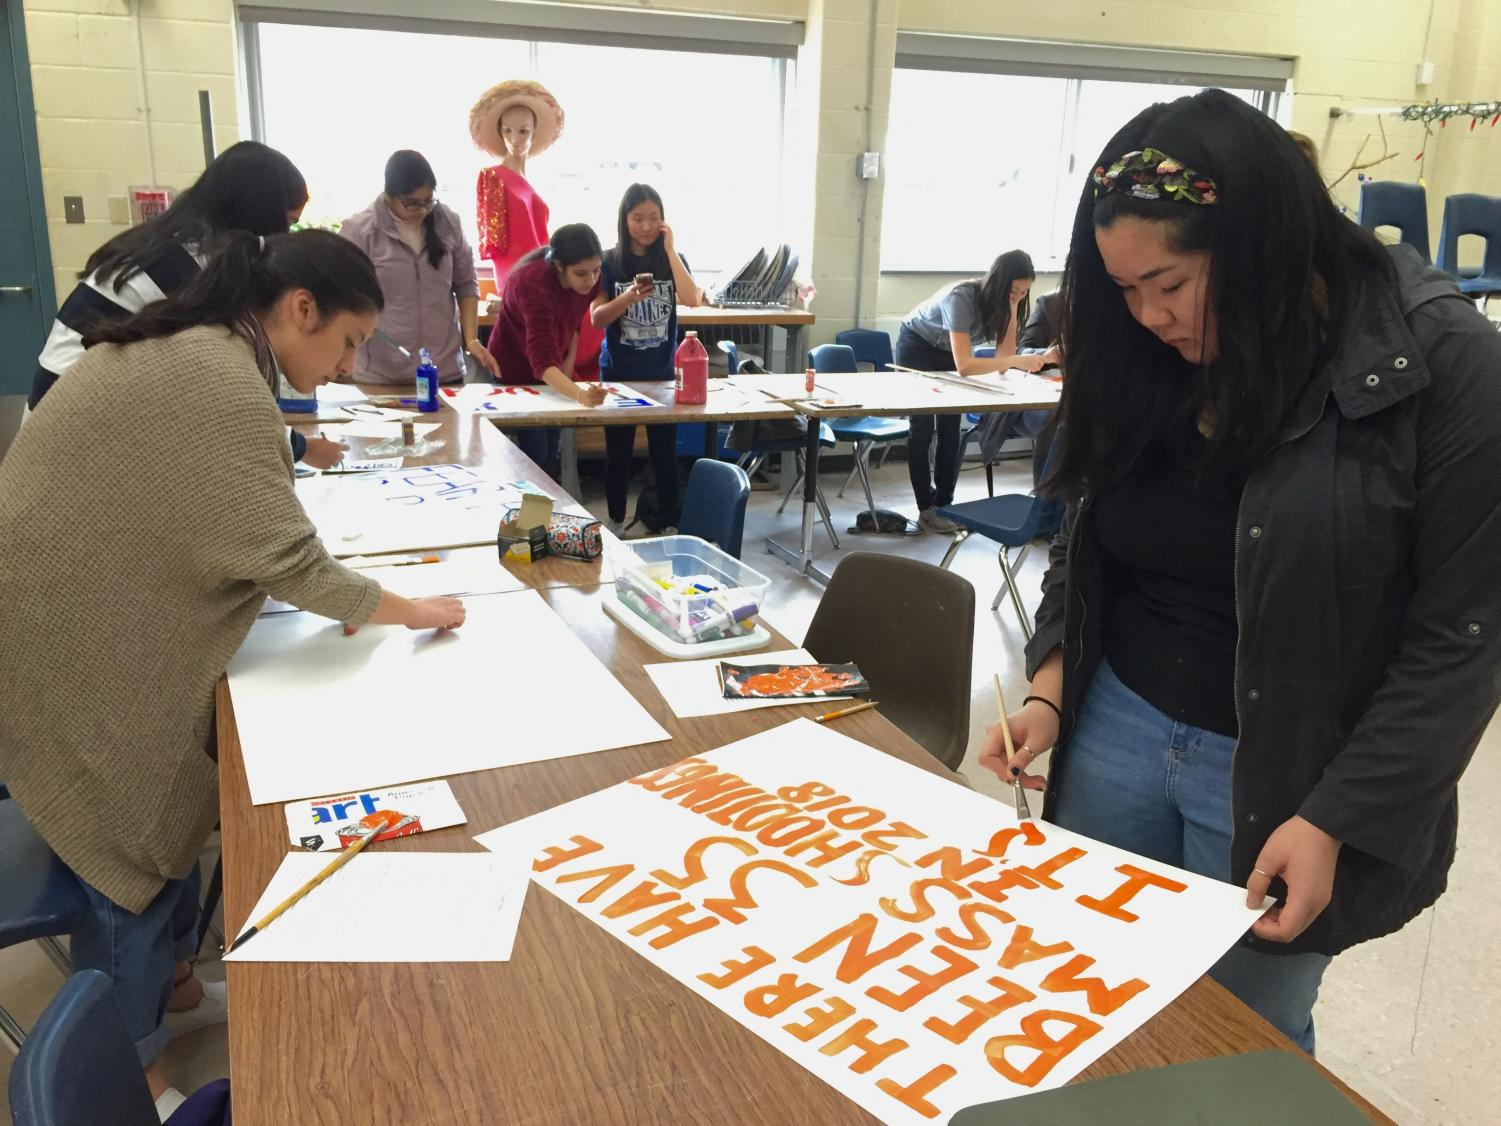 Students make posters for the Advocacy Initiative on March 14.